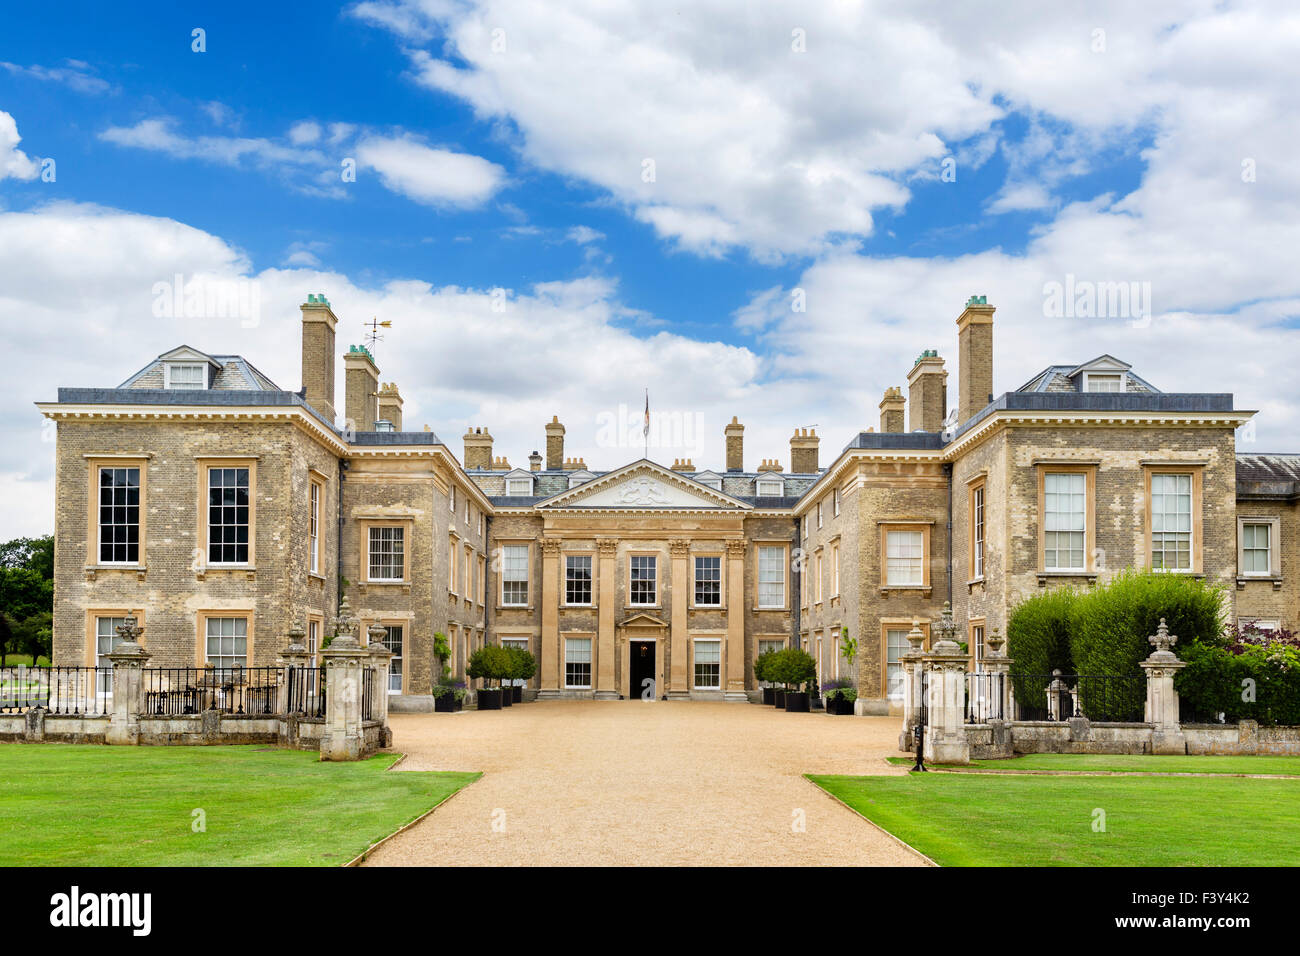 The front of Althorp house, seat of Earl Spencer and childhood home of Diana Princess of Wales, Northamptonshire, - Stock Image